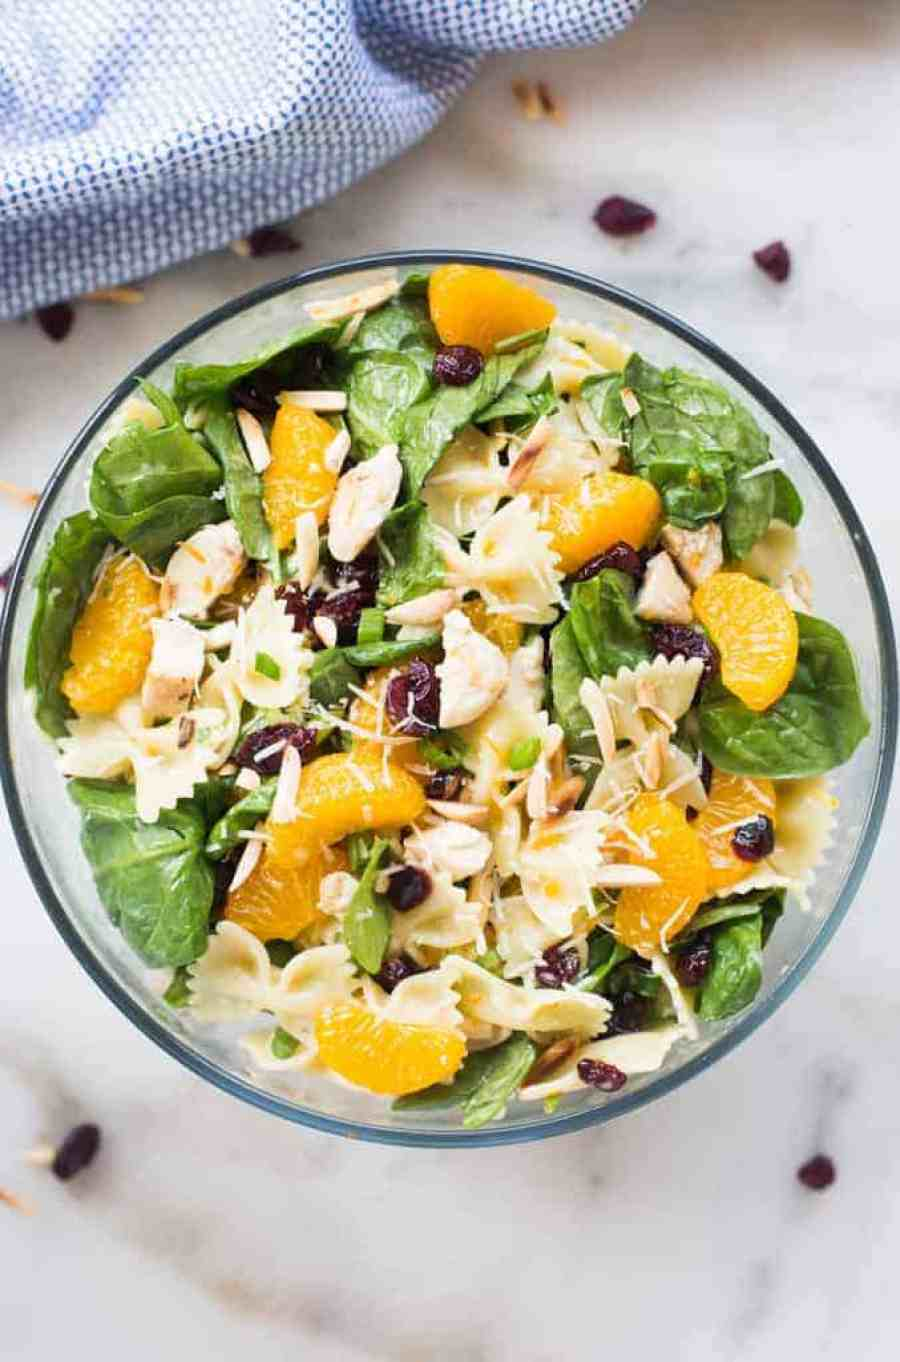 I could eat a big bowl of this hearty and Healthy Chicken Pasta Salad every single day! Spinach, chicken, almonds, mandarin oranges, craisins and parmesan cheese tossed together in a light and creamy citrus dressing.   tastesbetterfromscratch.com